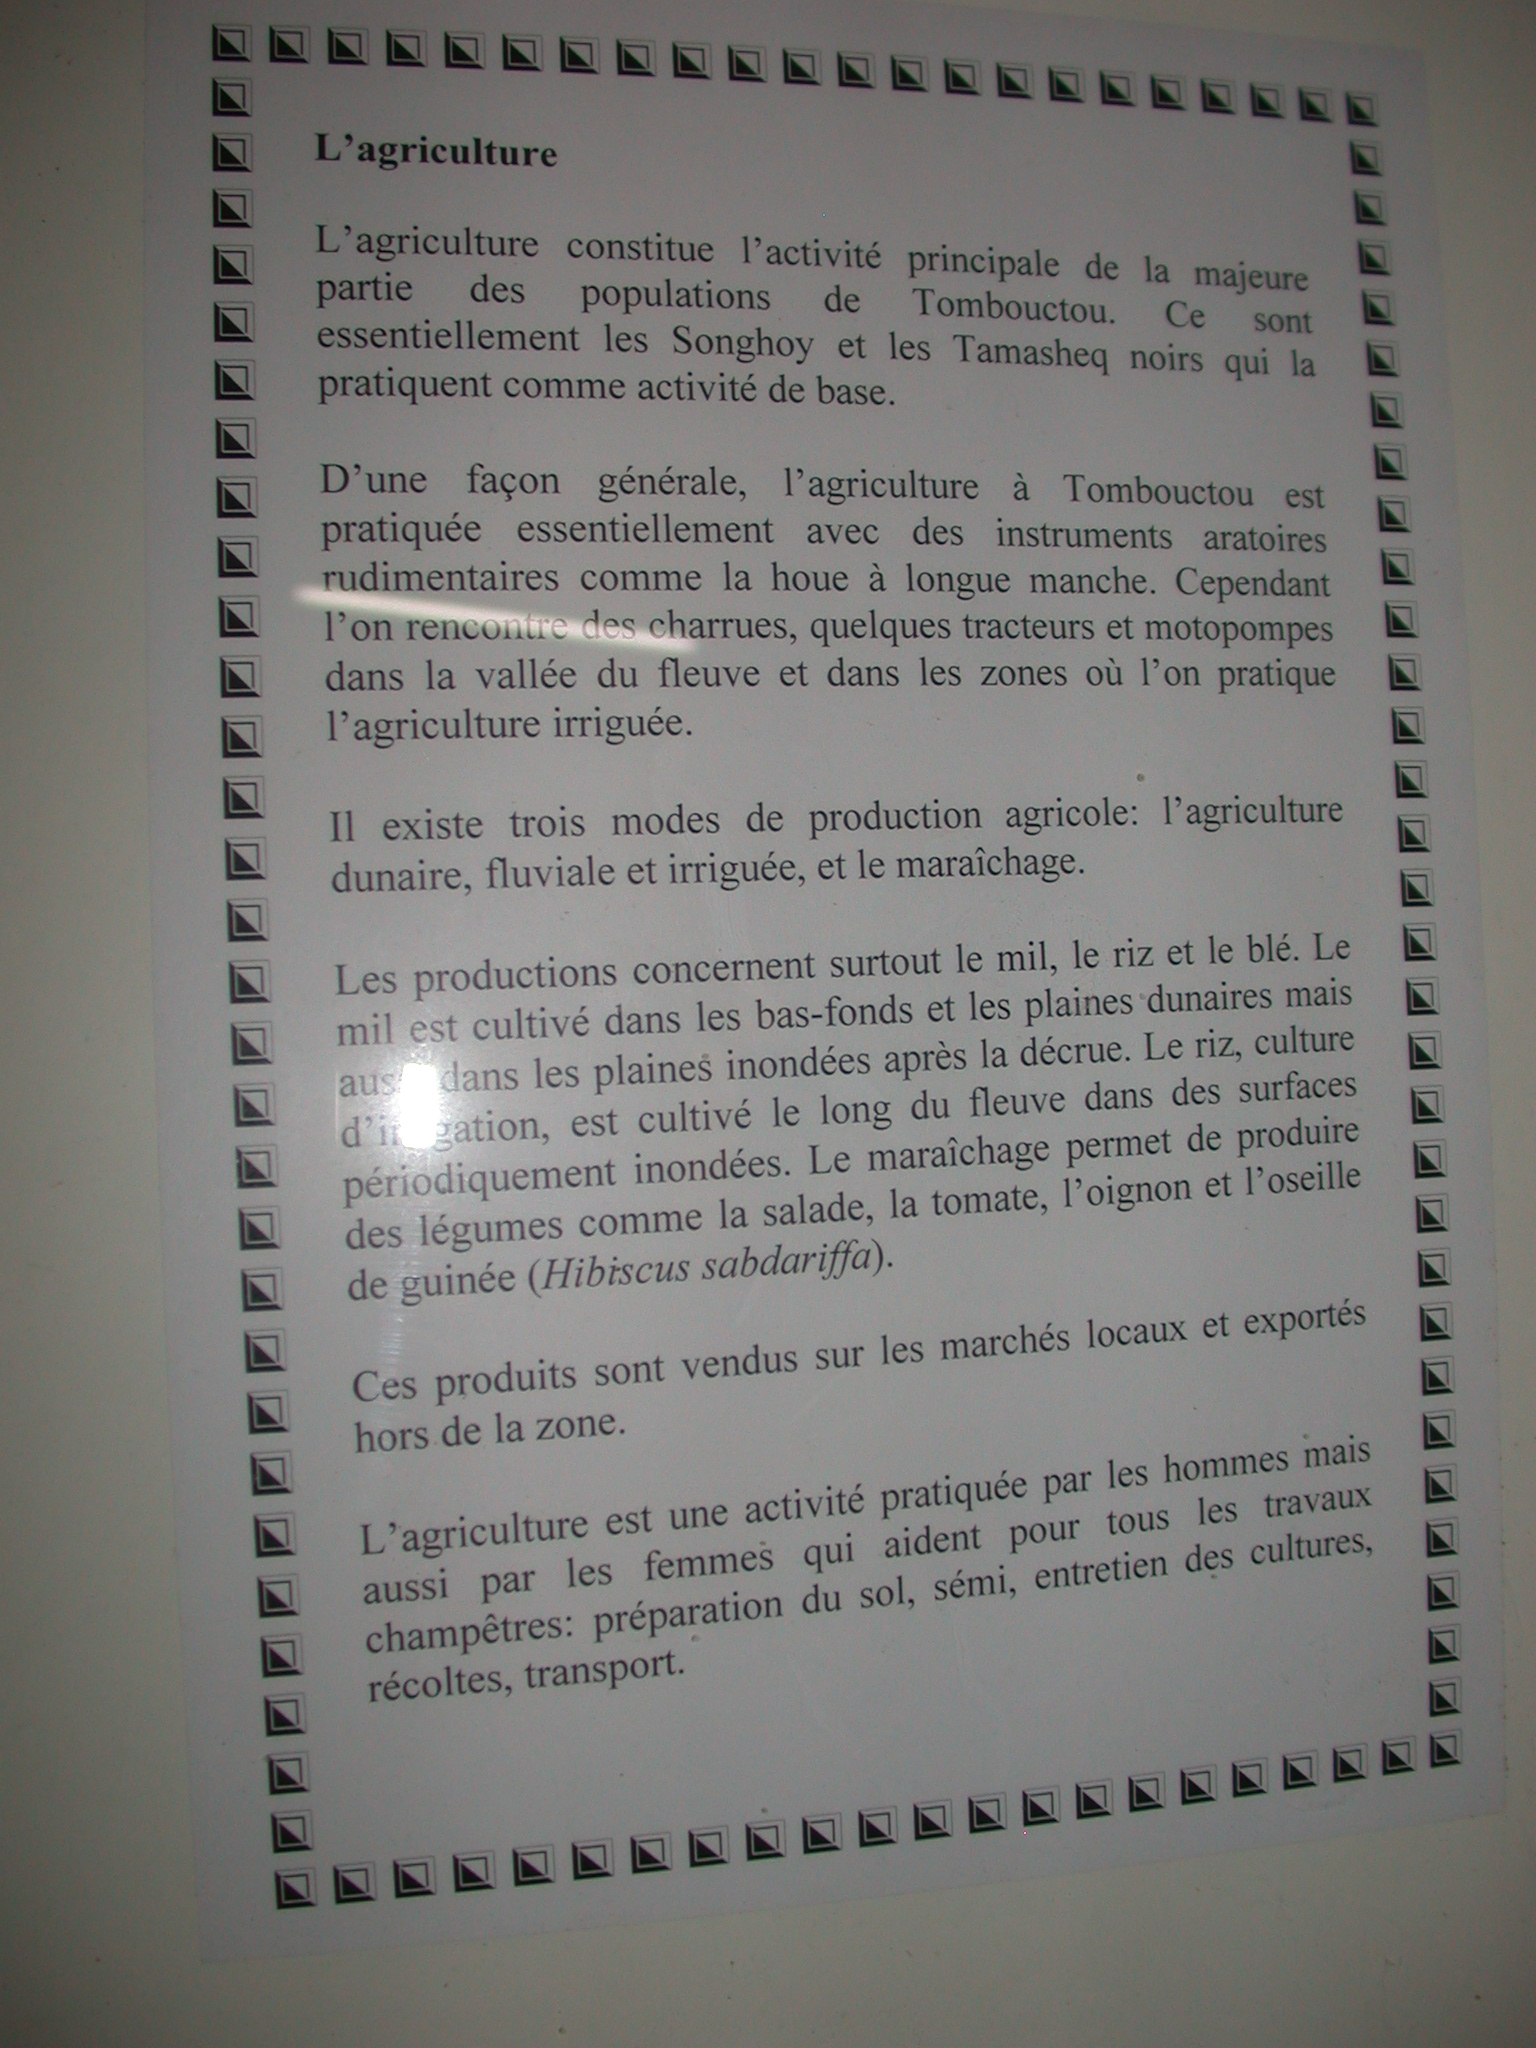 Agriculture Description, Timbuktu Ethnological Museum, Timbuktu, Mali